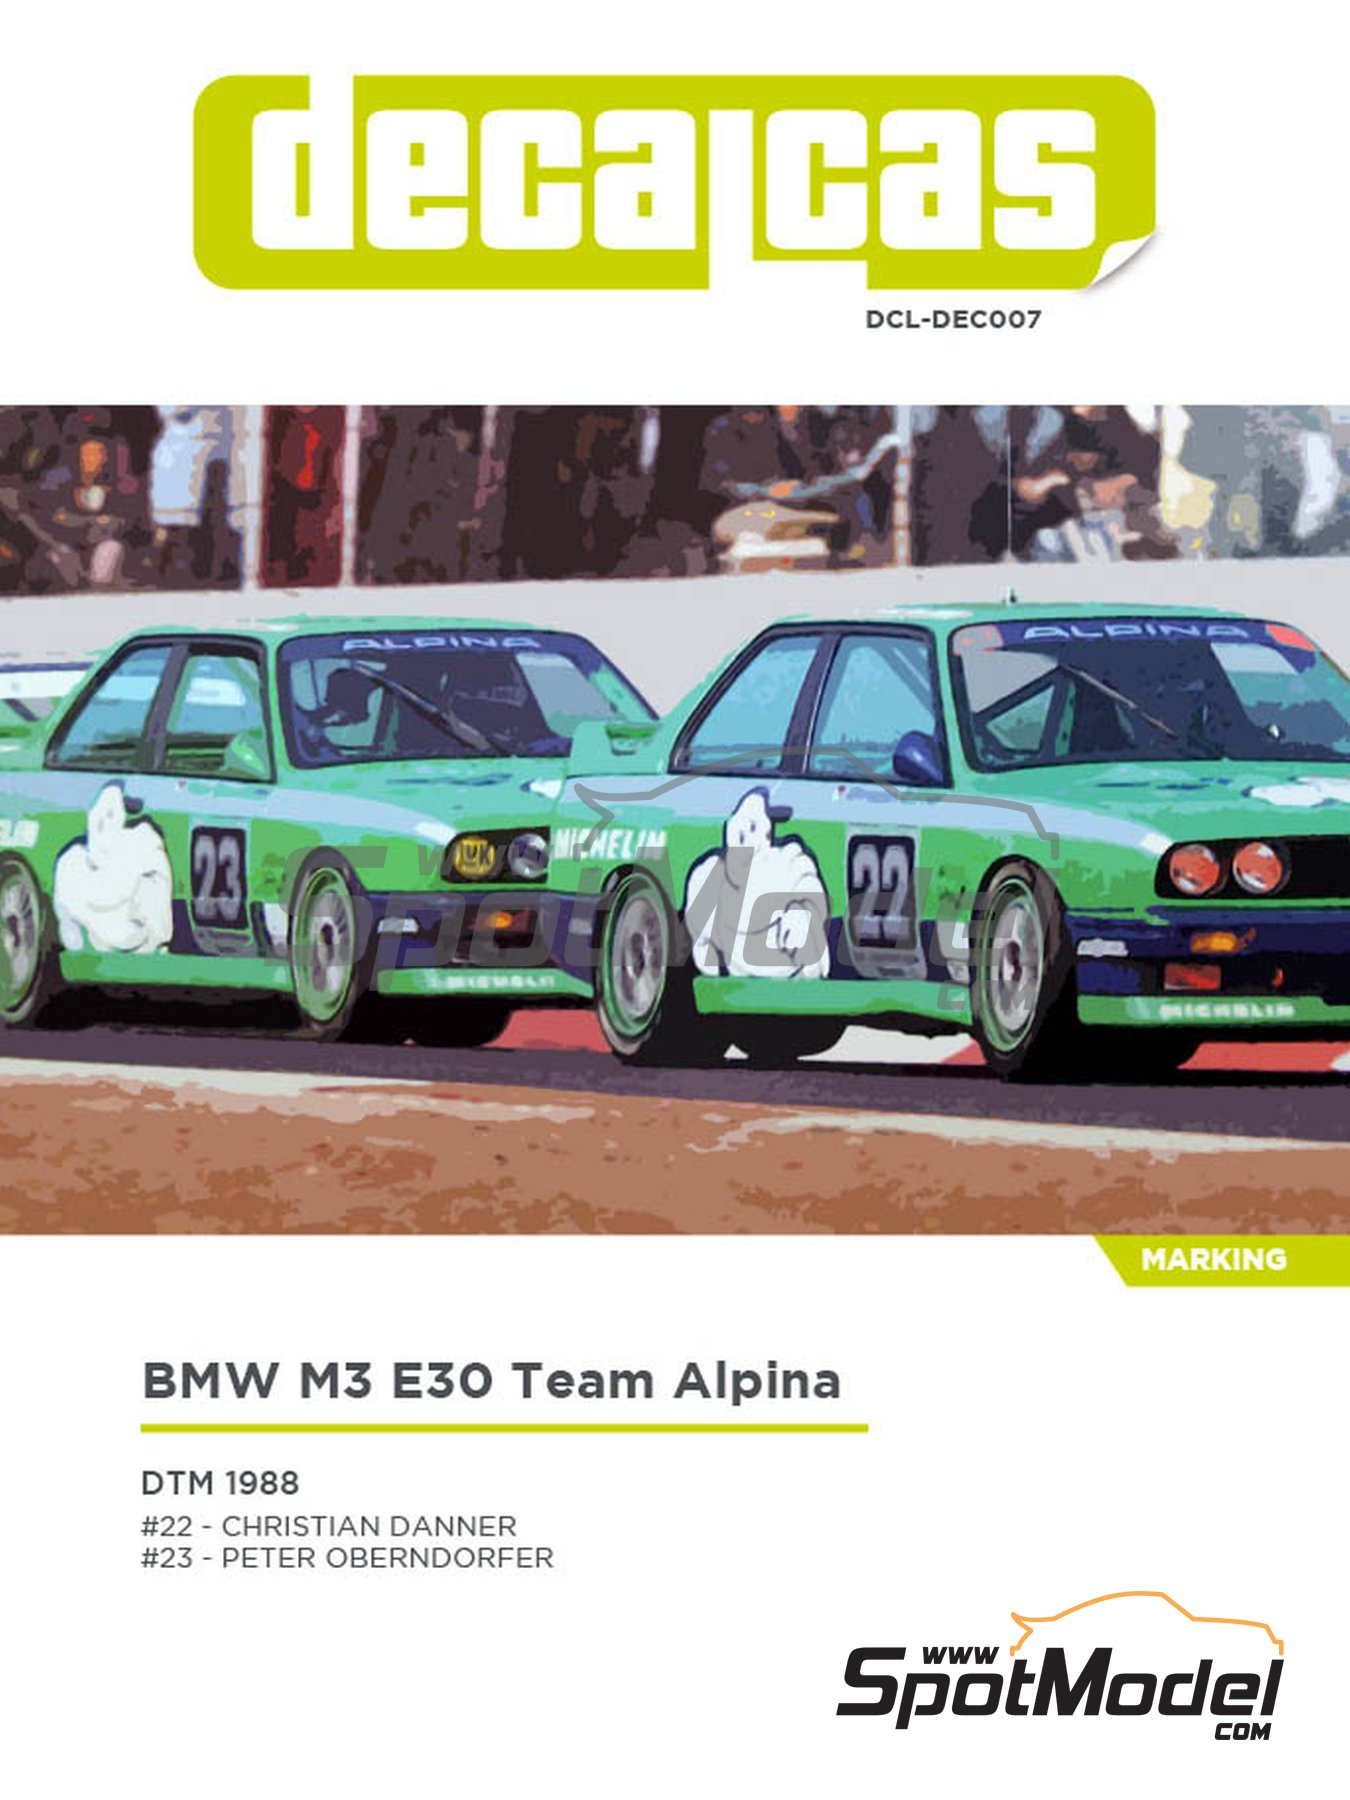 BMW M3 E30 Team Alpina - DTM 1988 | Decoración en escala 1/24 fabricado por Decalcas (ref. DCL-DEC007) image